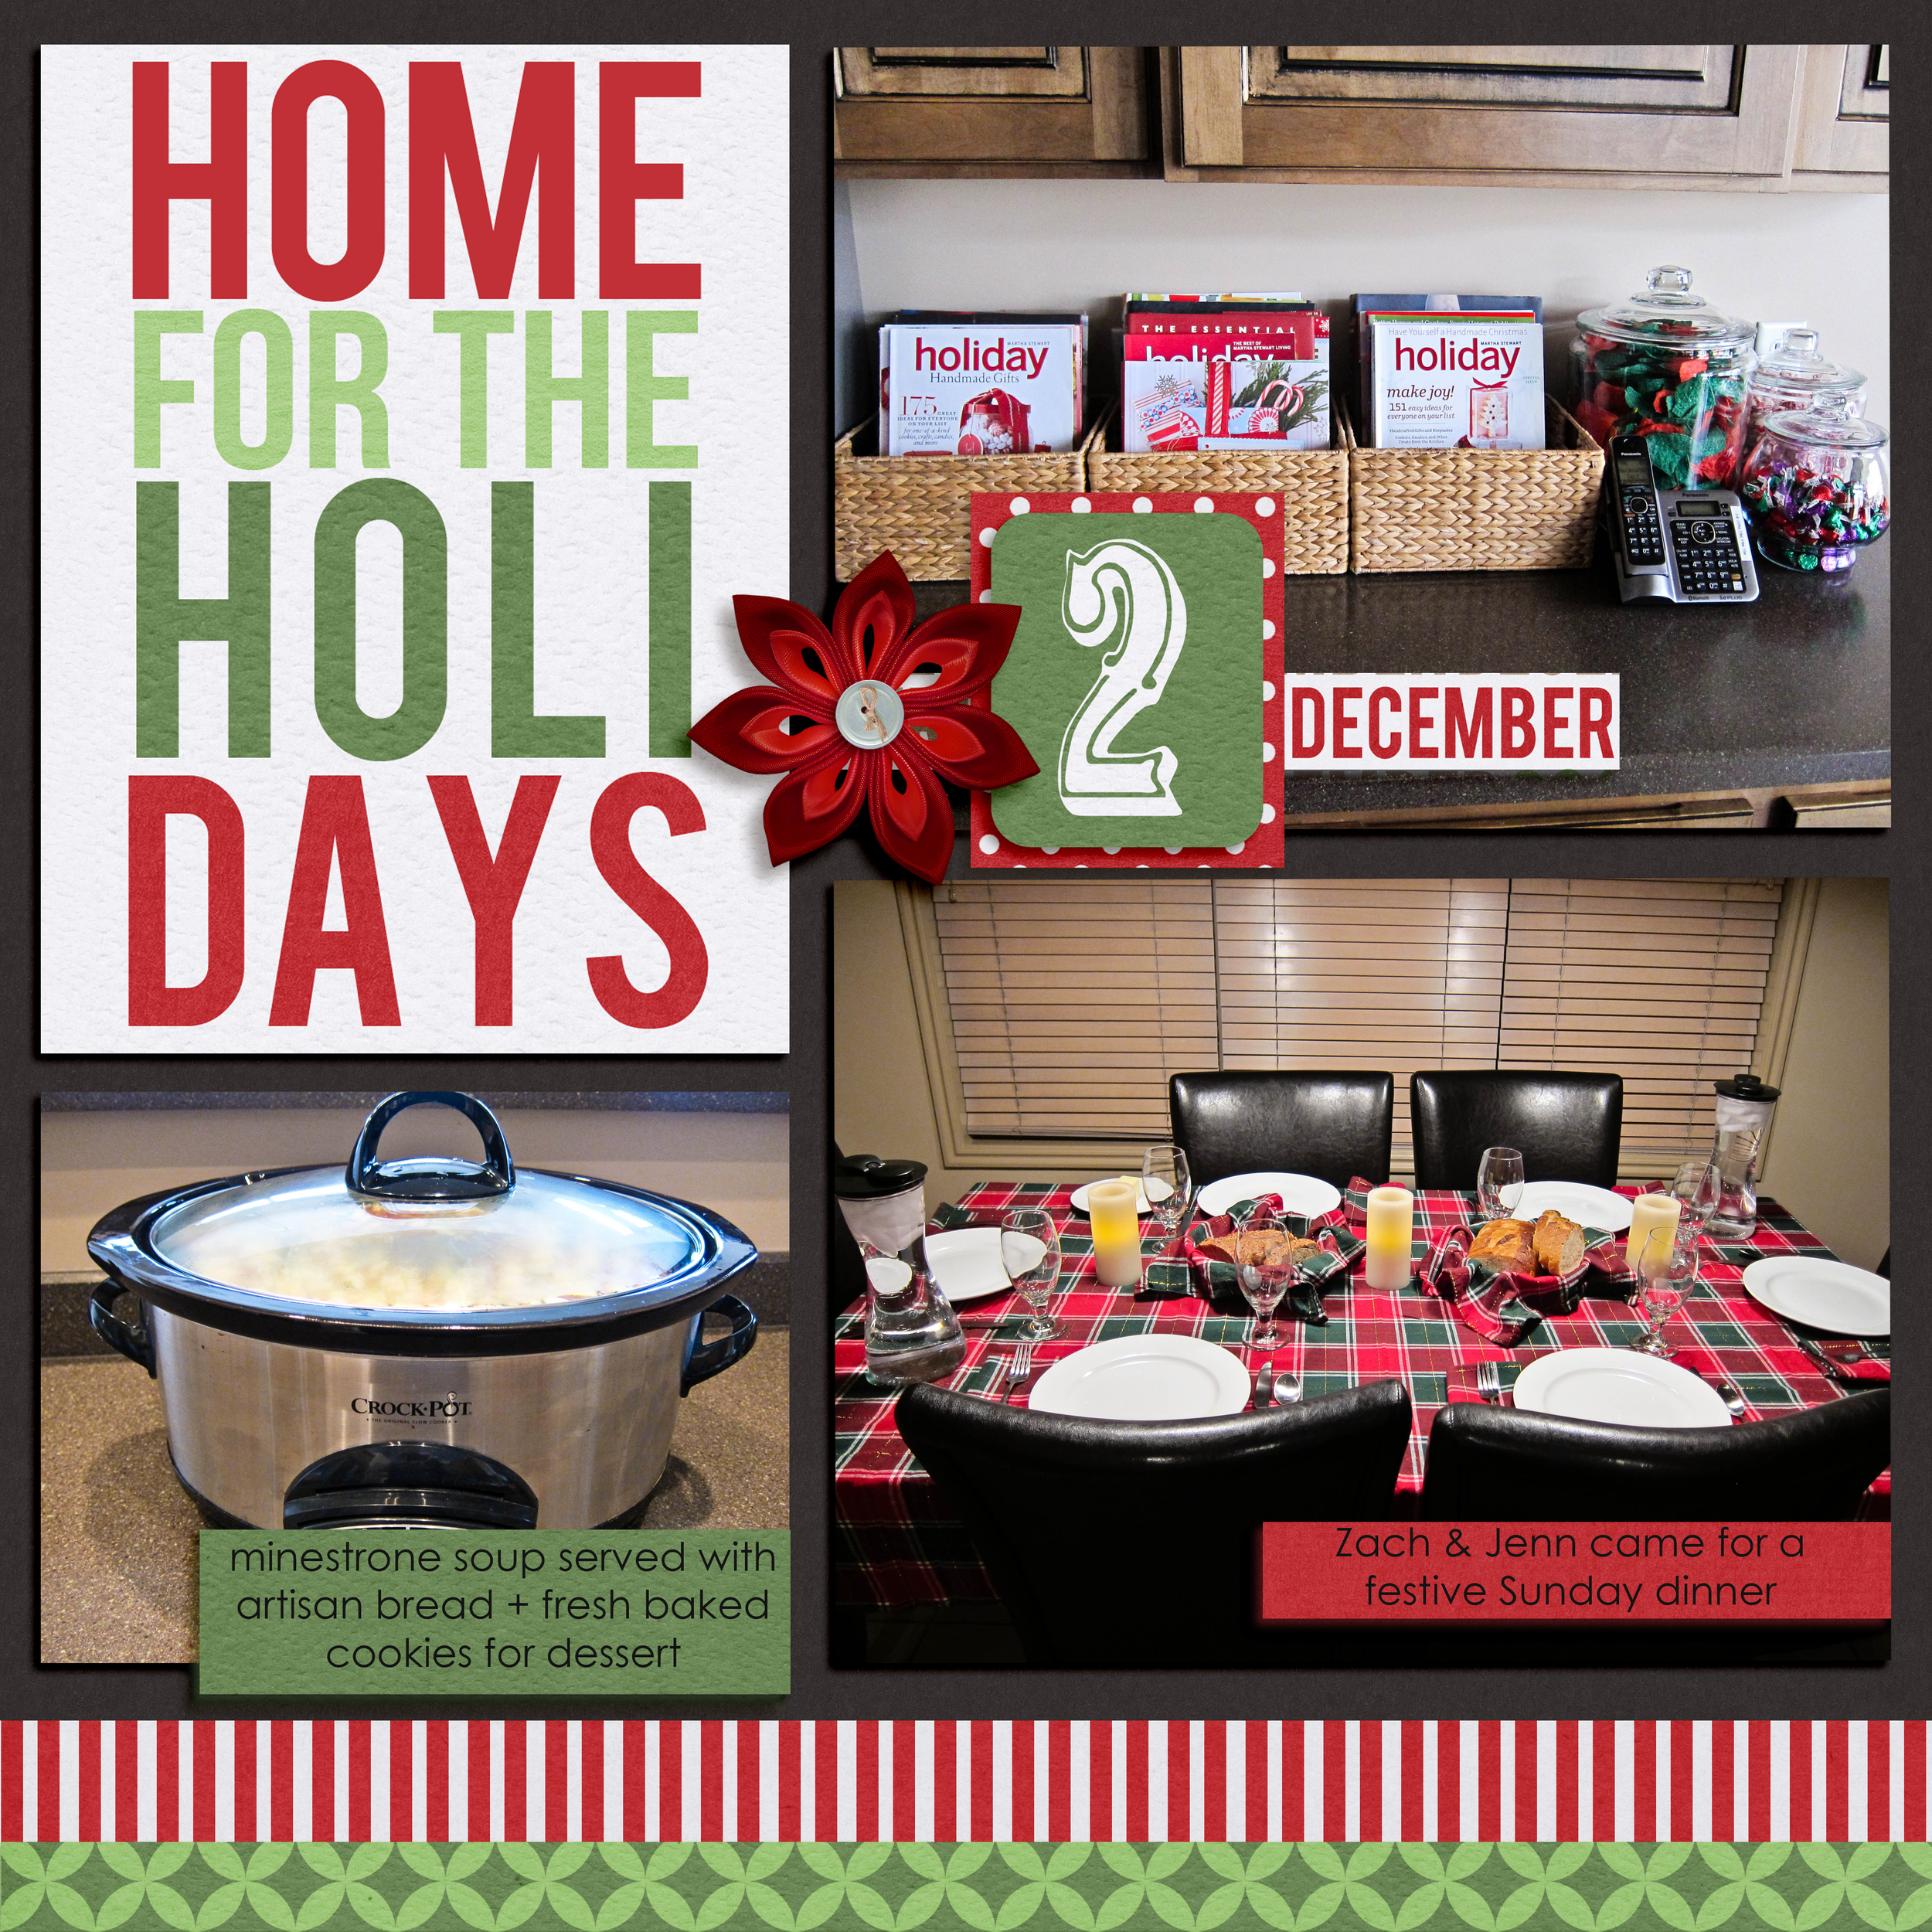 Home for the holidays Katie the Scrapbook Lady.jpg